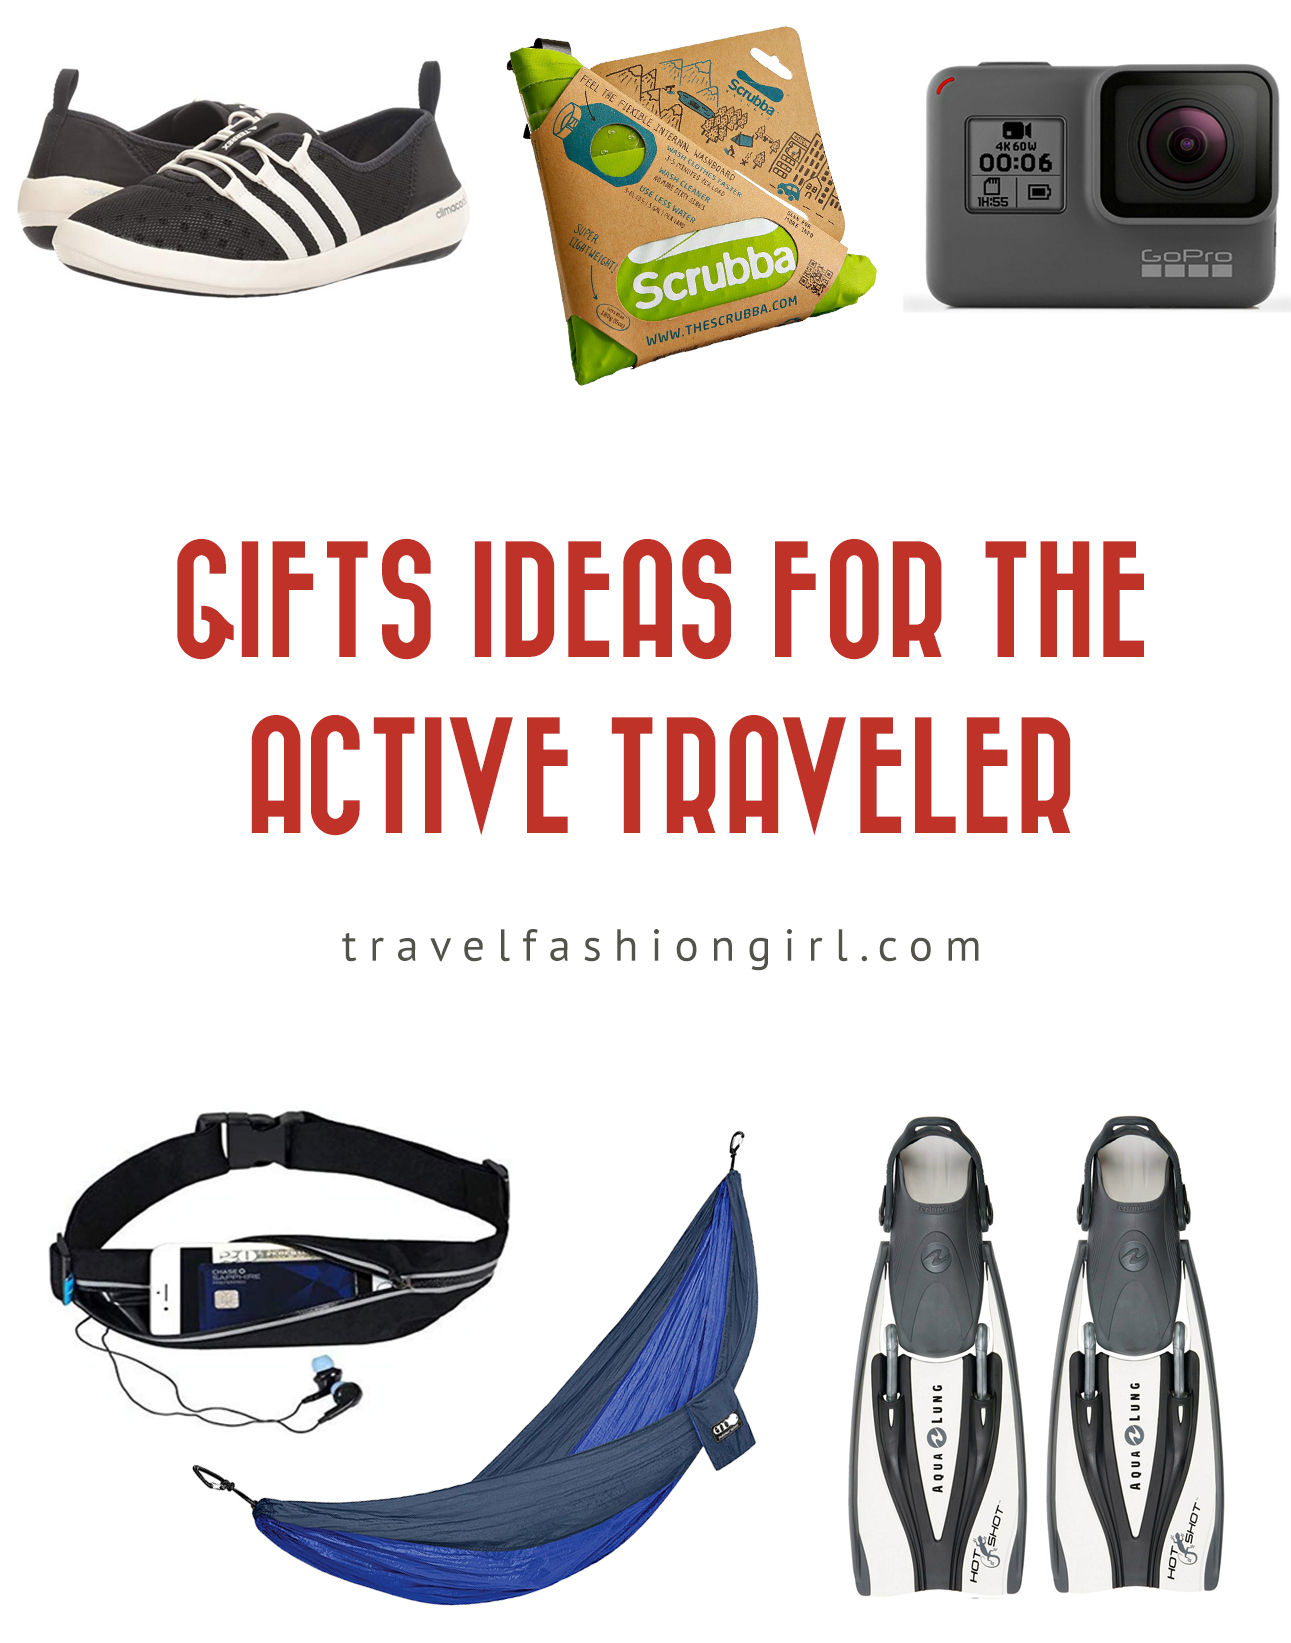 gift-ideas-for-active-travelers